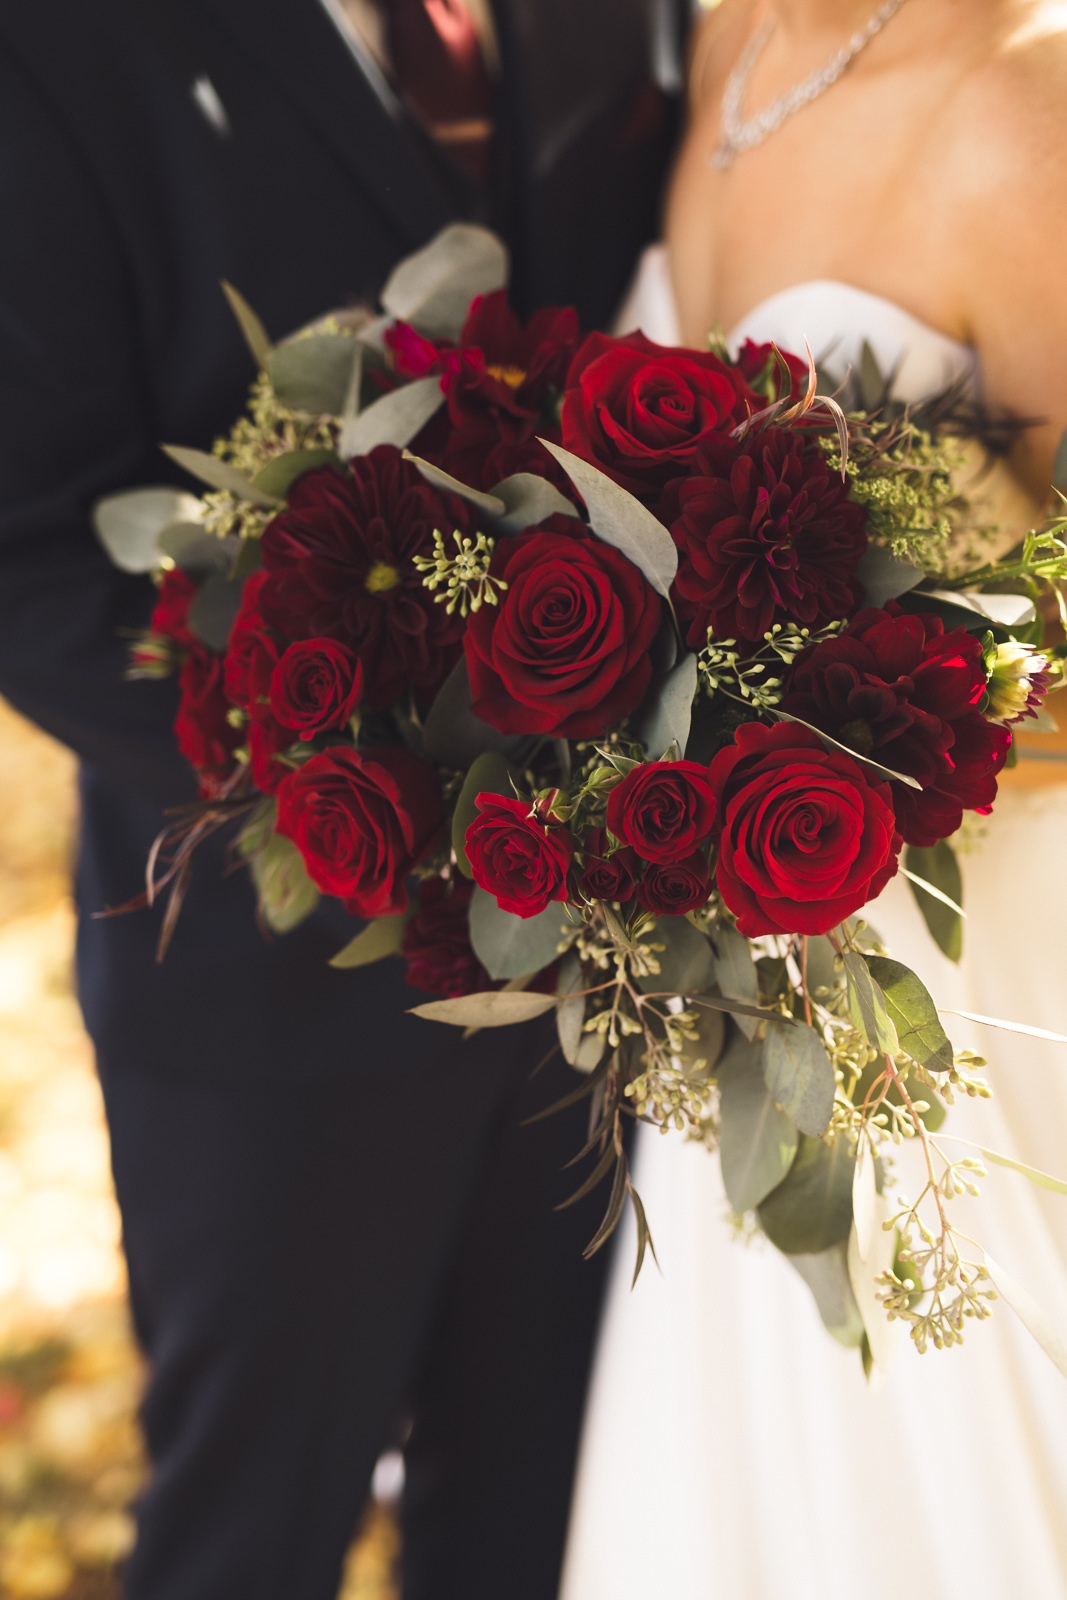 des-moines-wedding-k-c-9990-wedding-photographer-des-moines-iowa-k-c.jpg